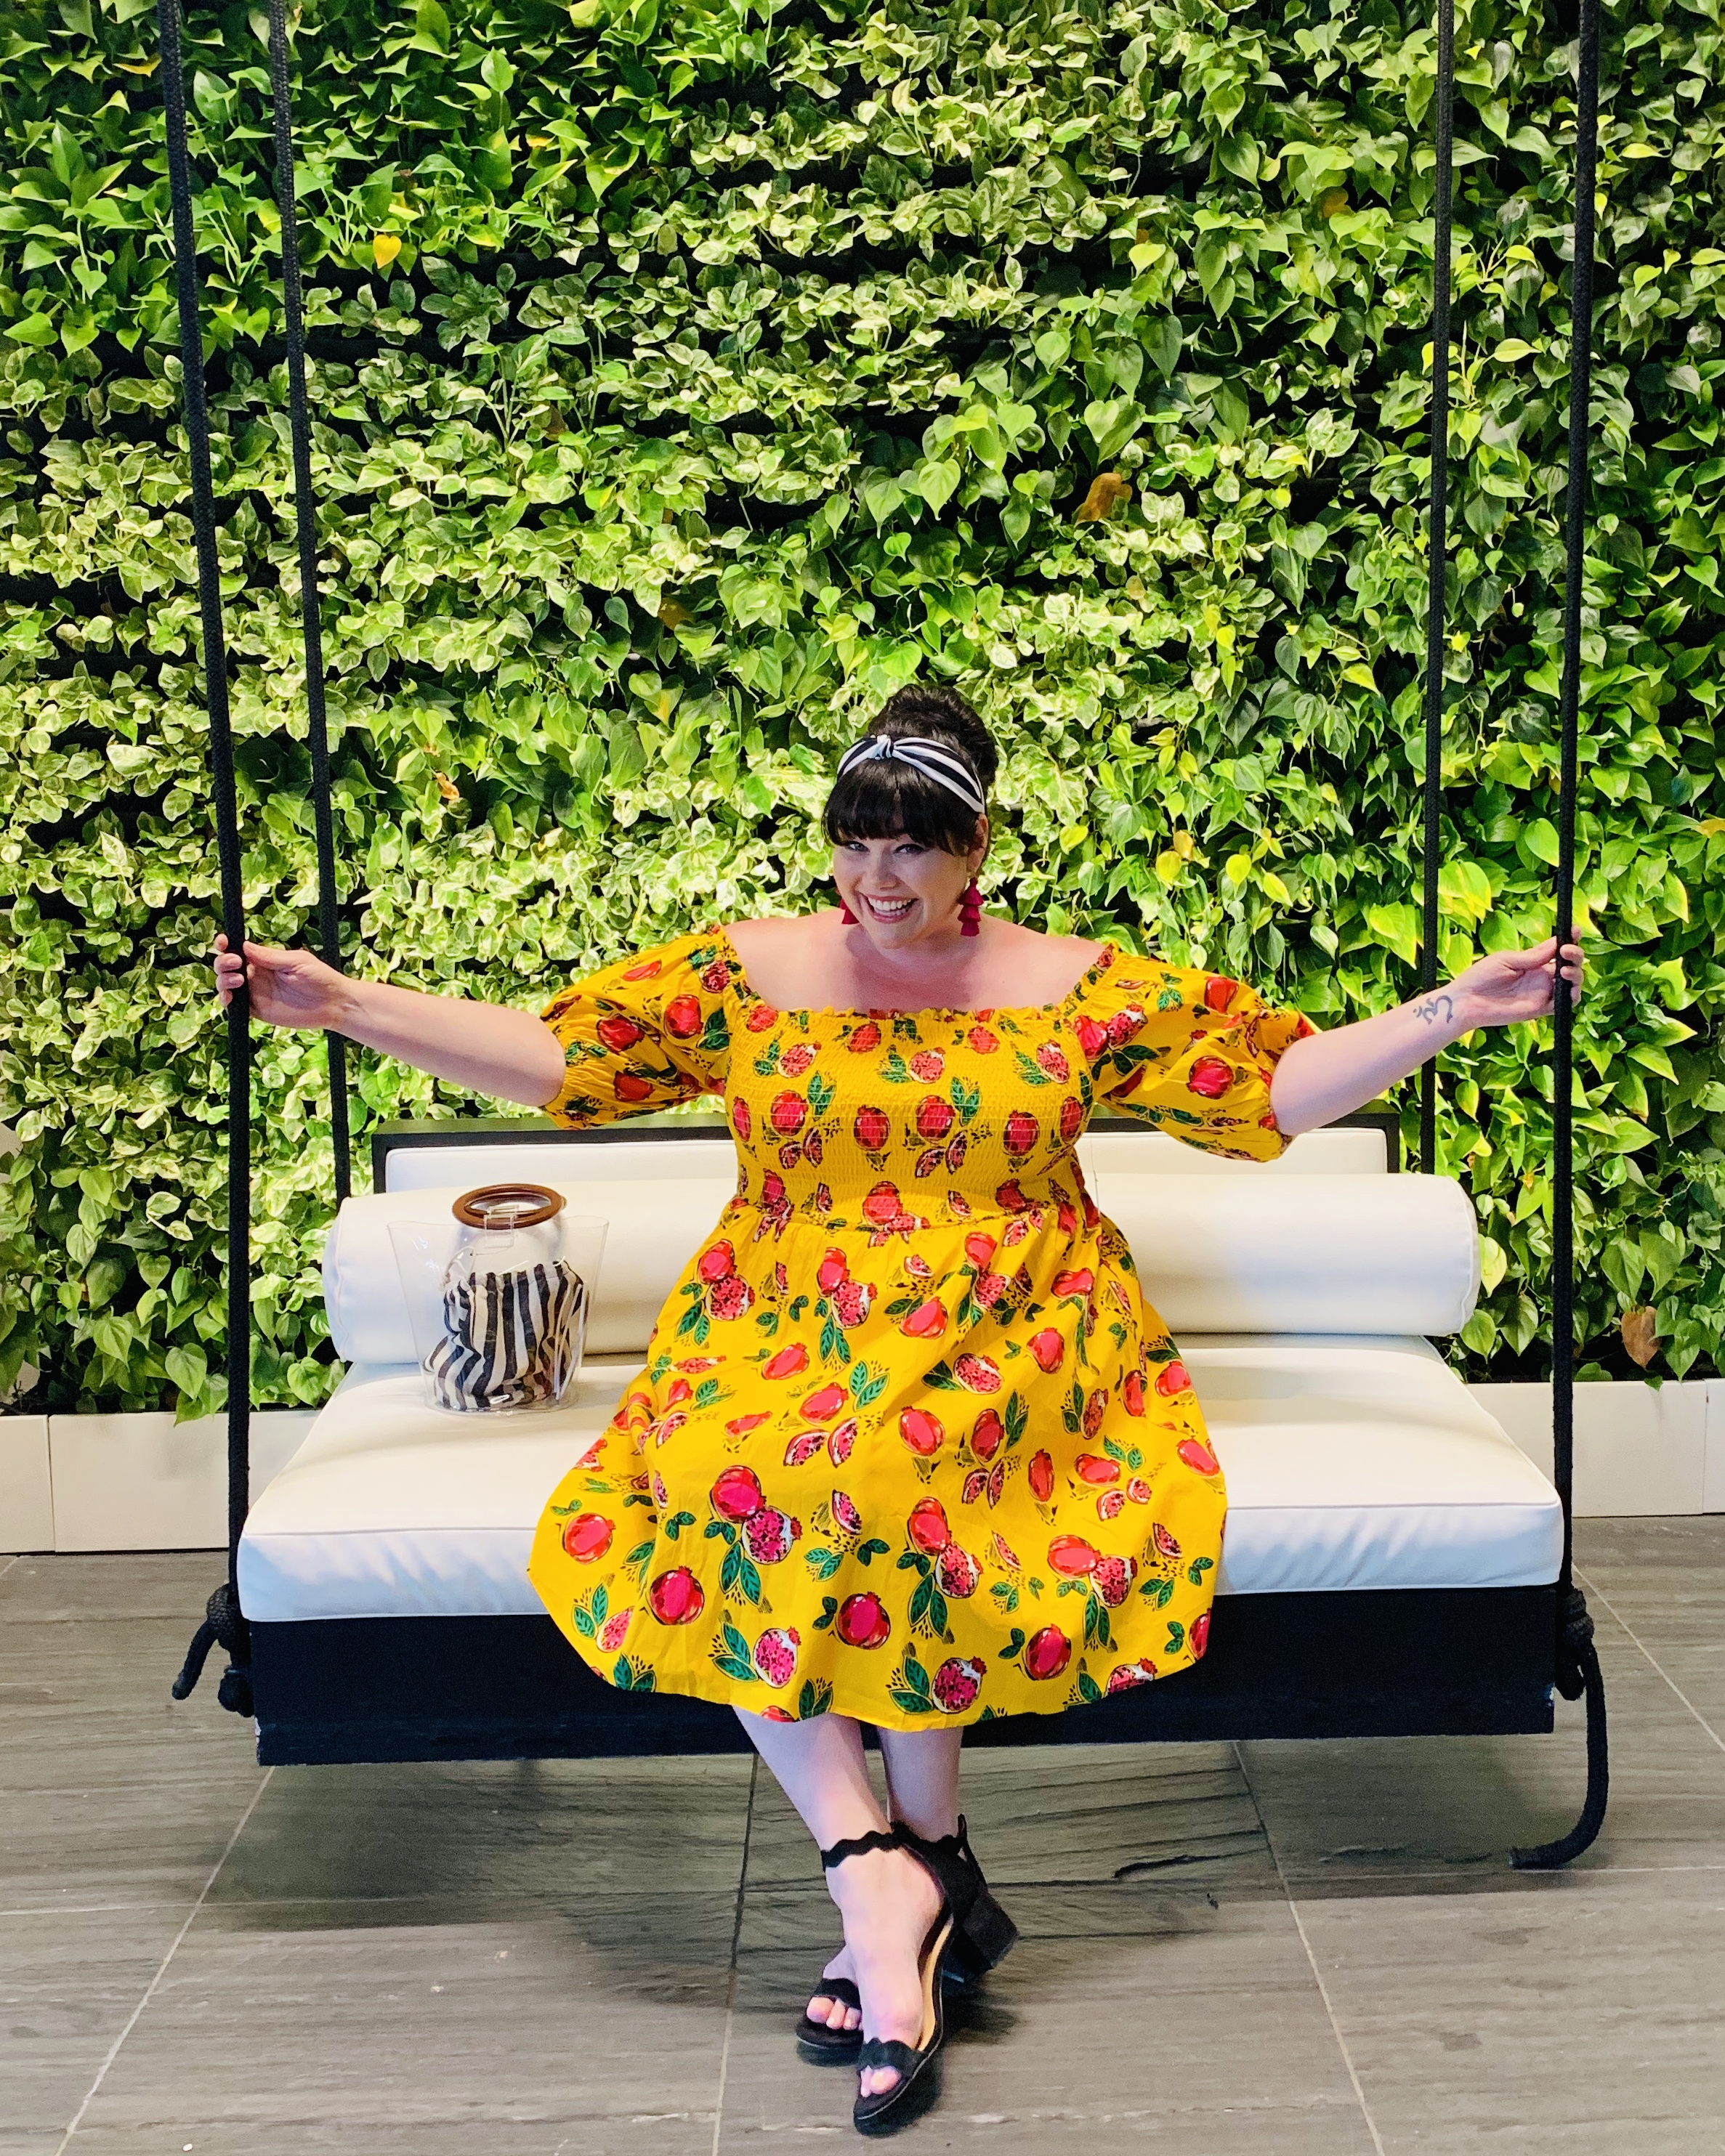 OOTD: Plus Size Off the Shoulder Dress in Pomegranate Print